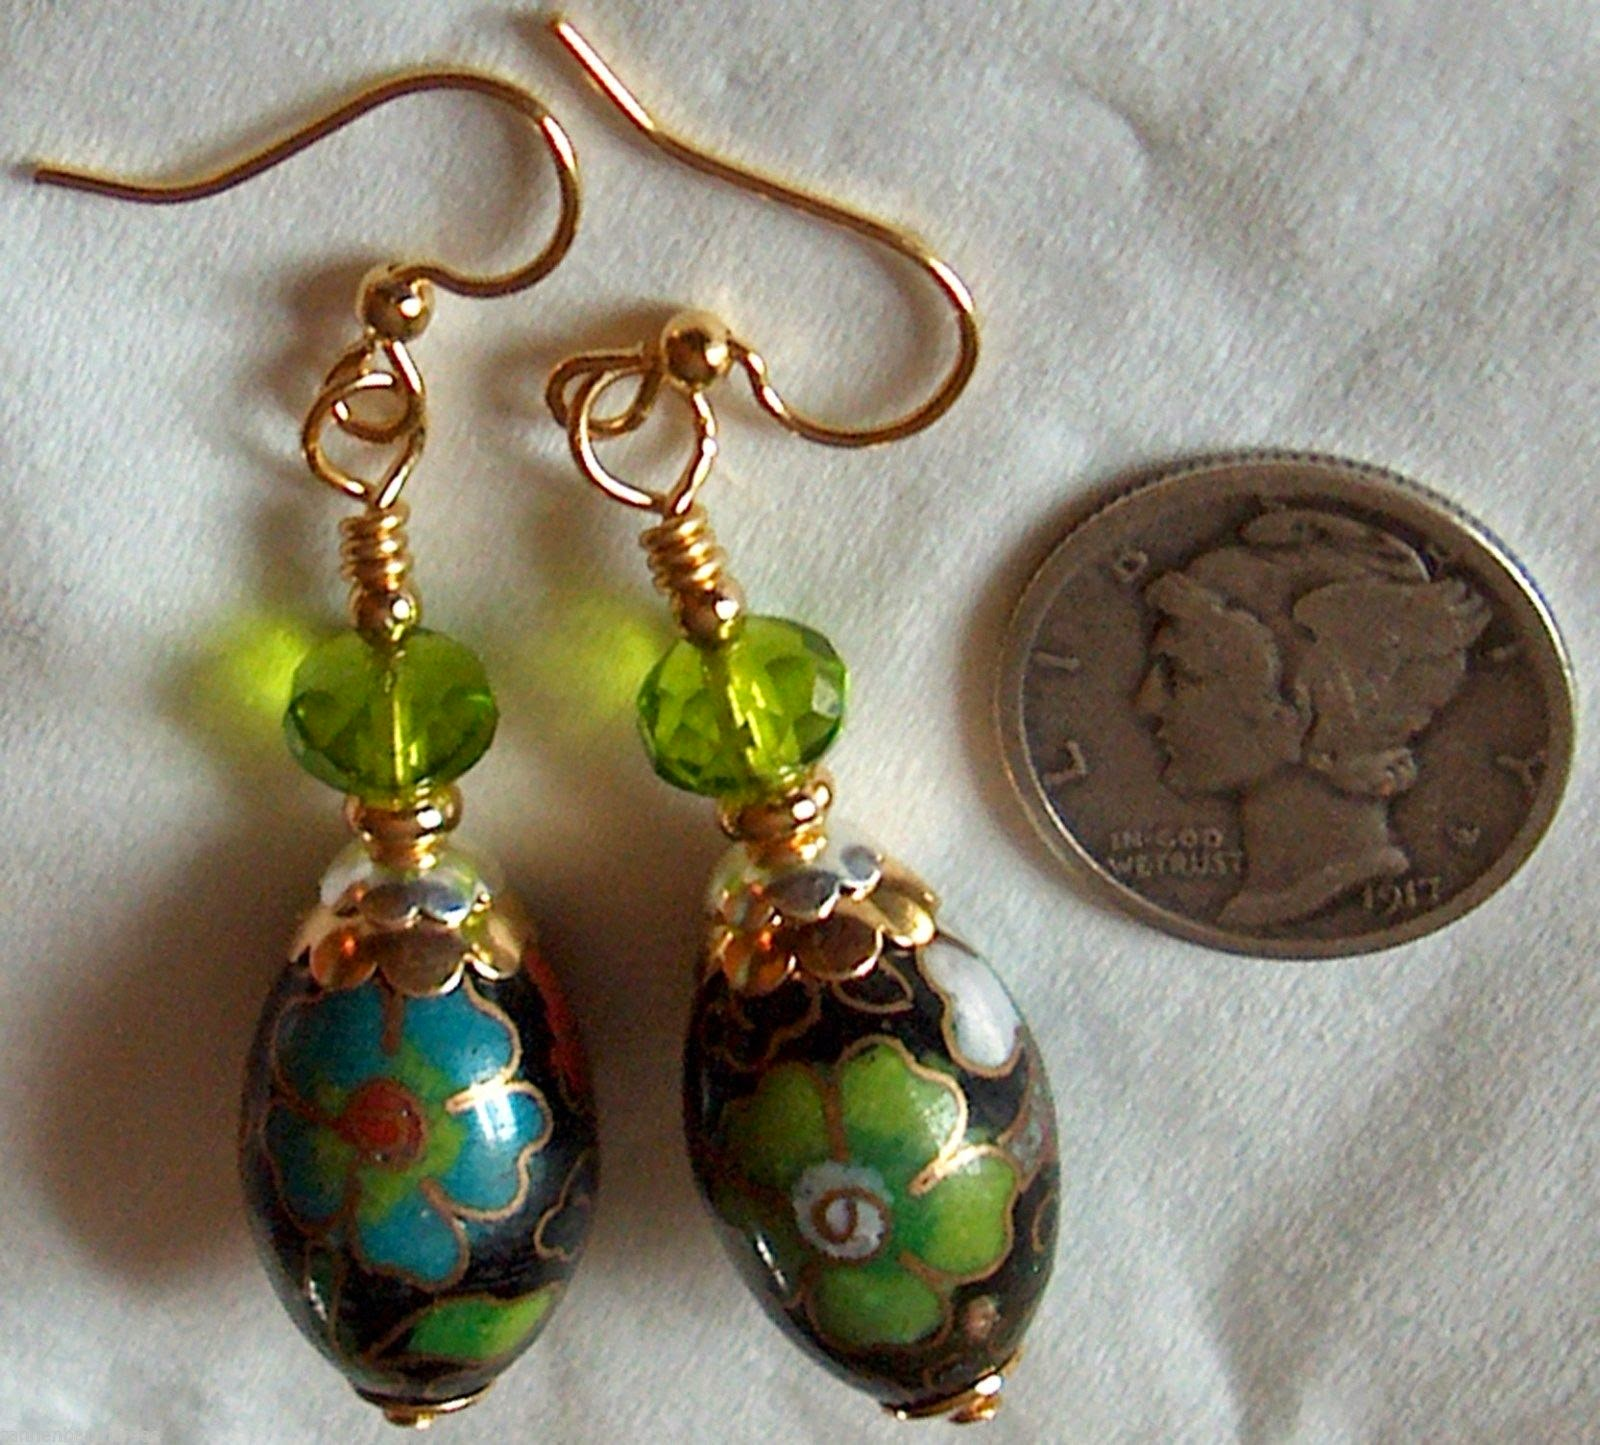 http://stores.ebay.com/Kirsten-Tannenbaum-Earrings-by-Mom